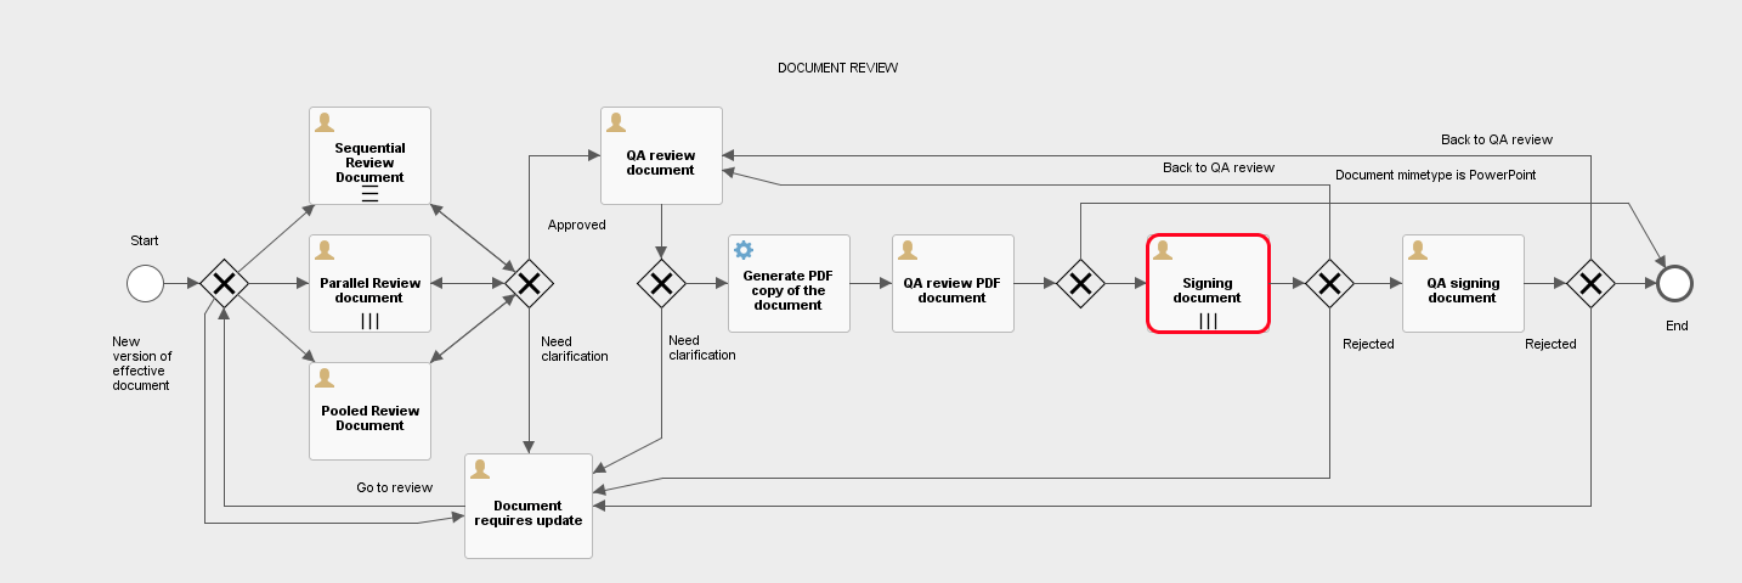 customized document review with Alfresco